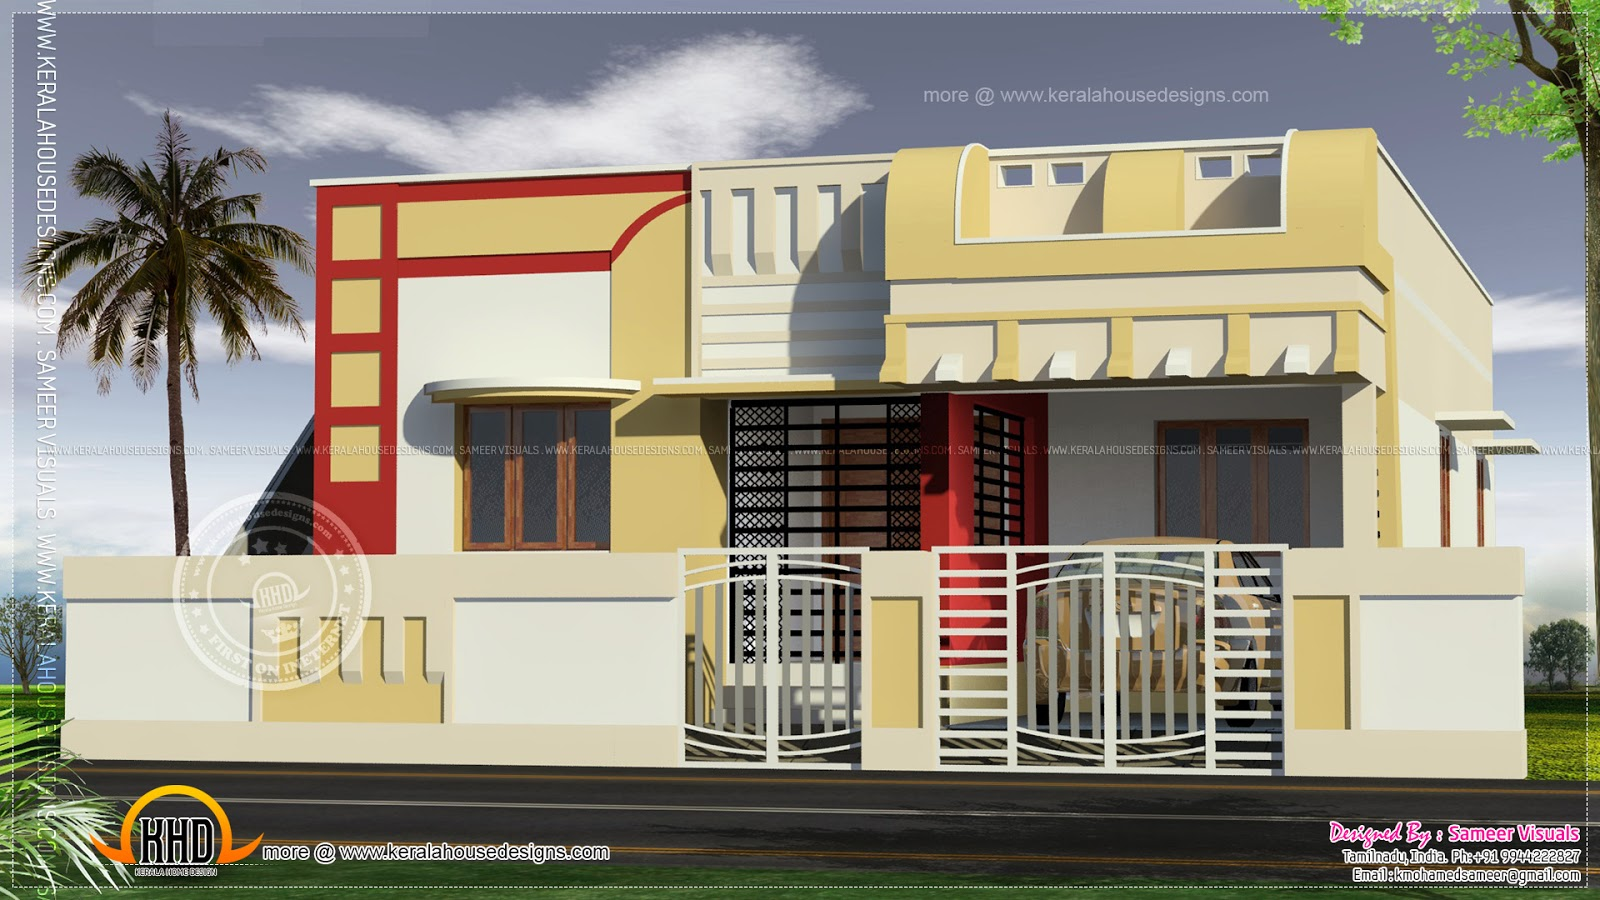 Small south indian home design kerala home design and Indian house structure design